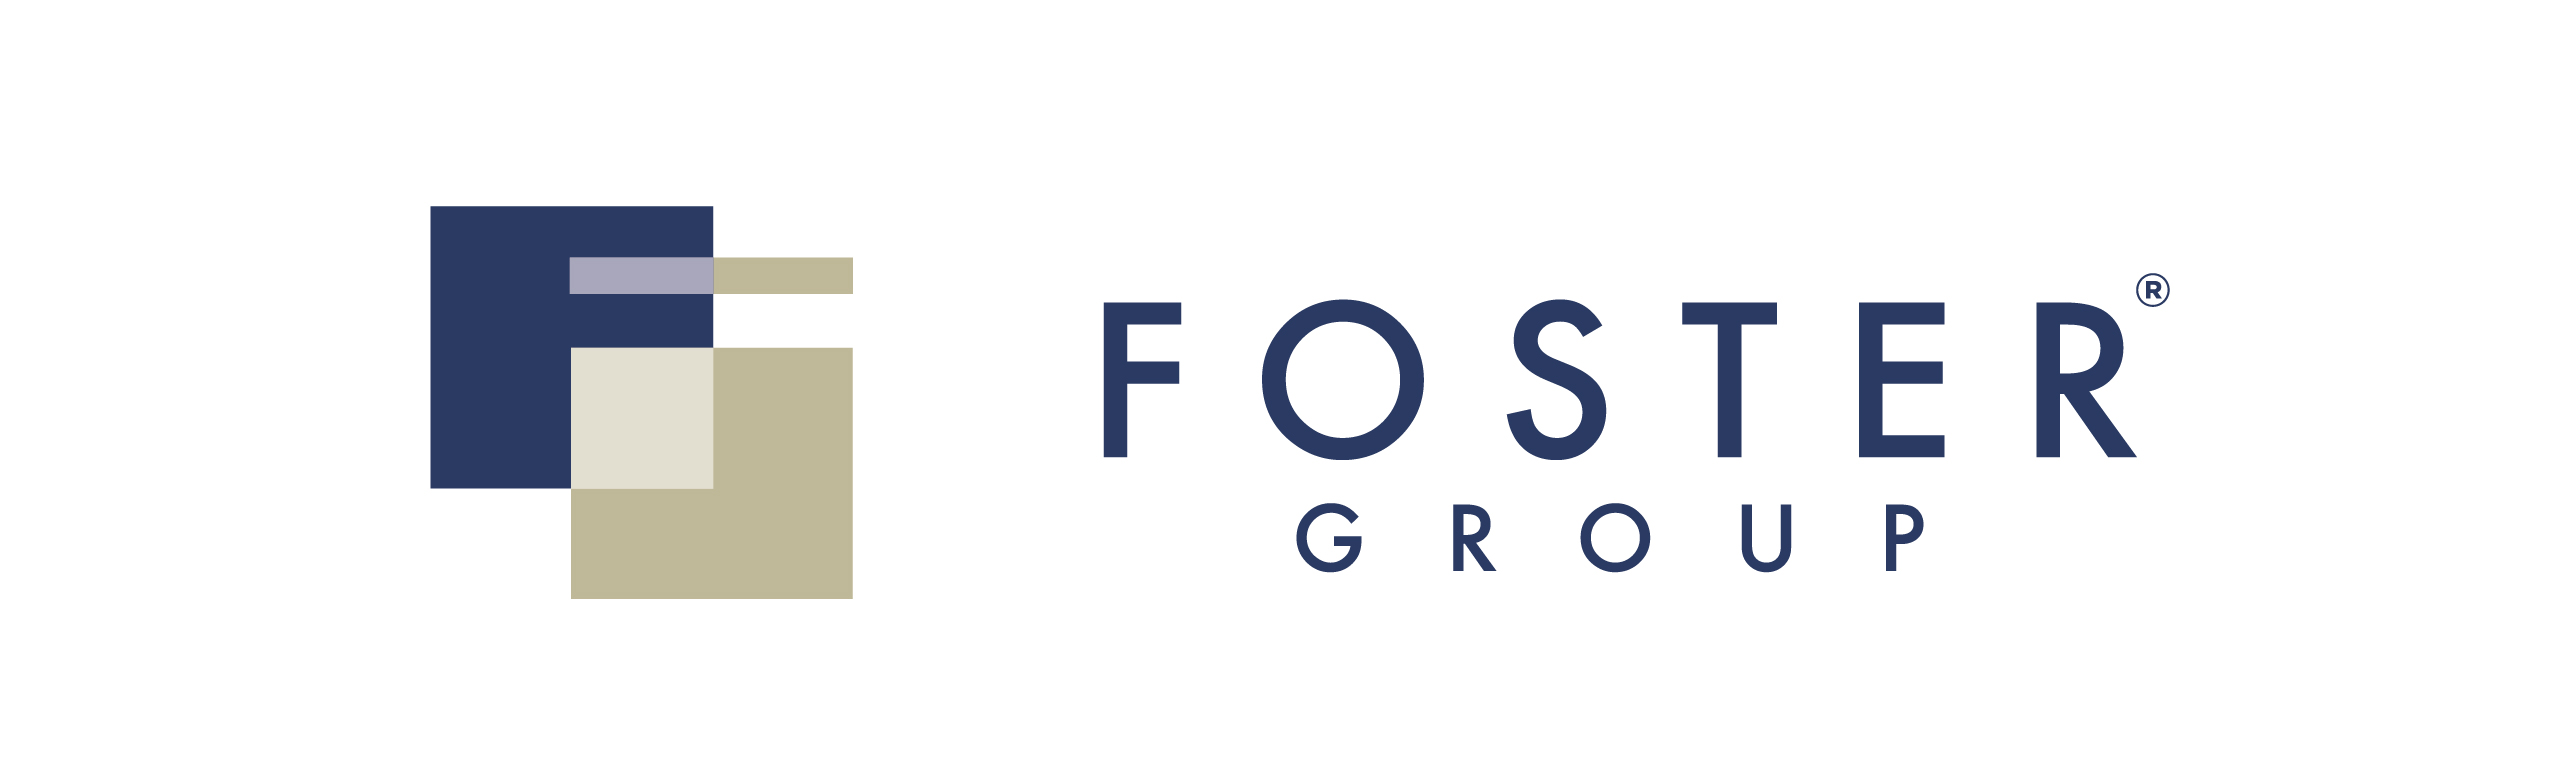 Foster Group